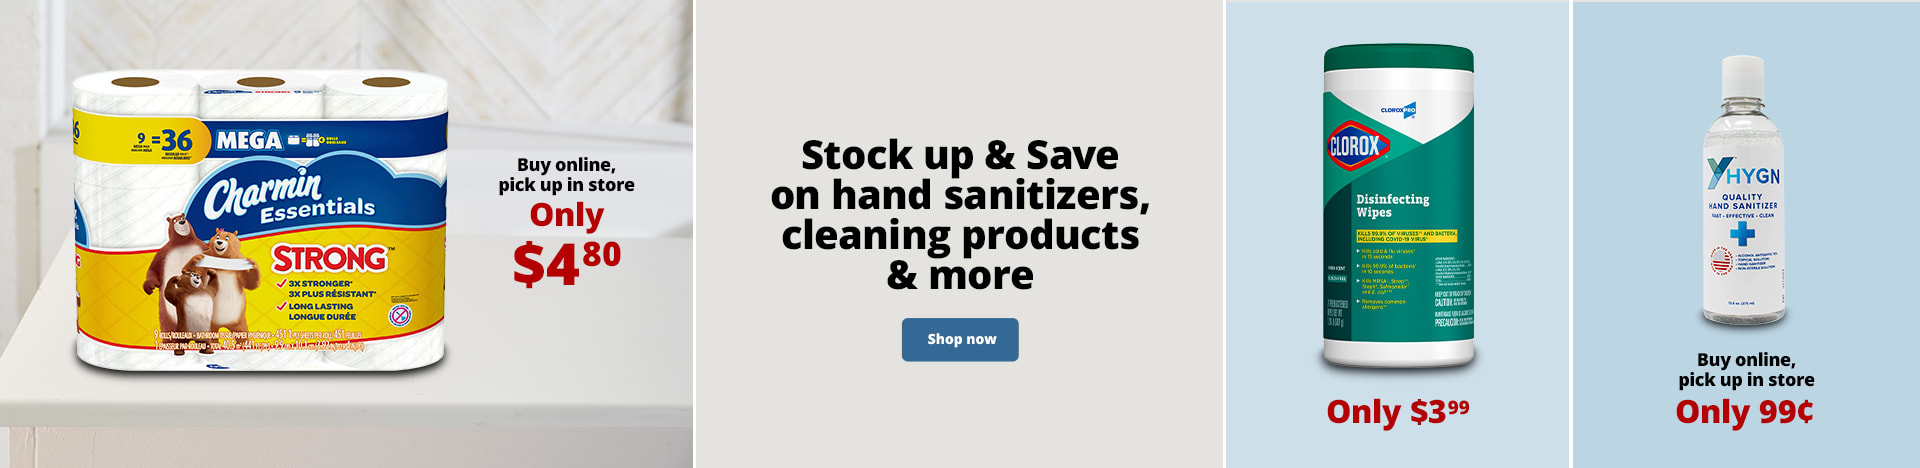 Stock up & Save on hand sanitizers, cleaning products & more